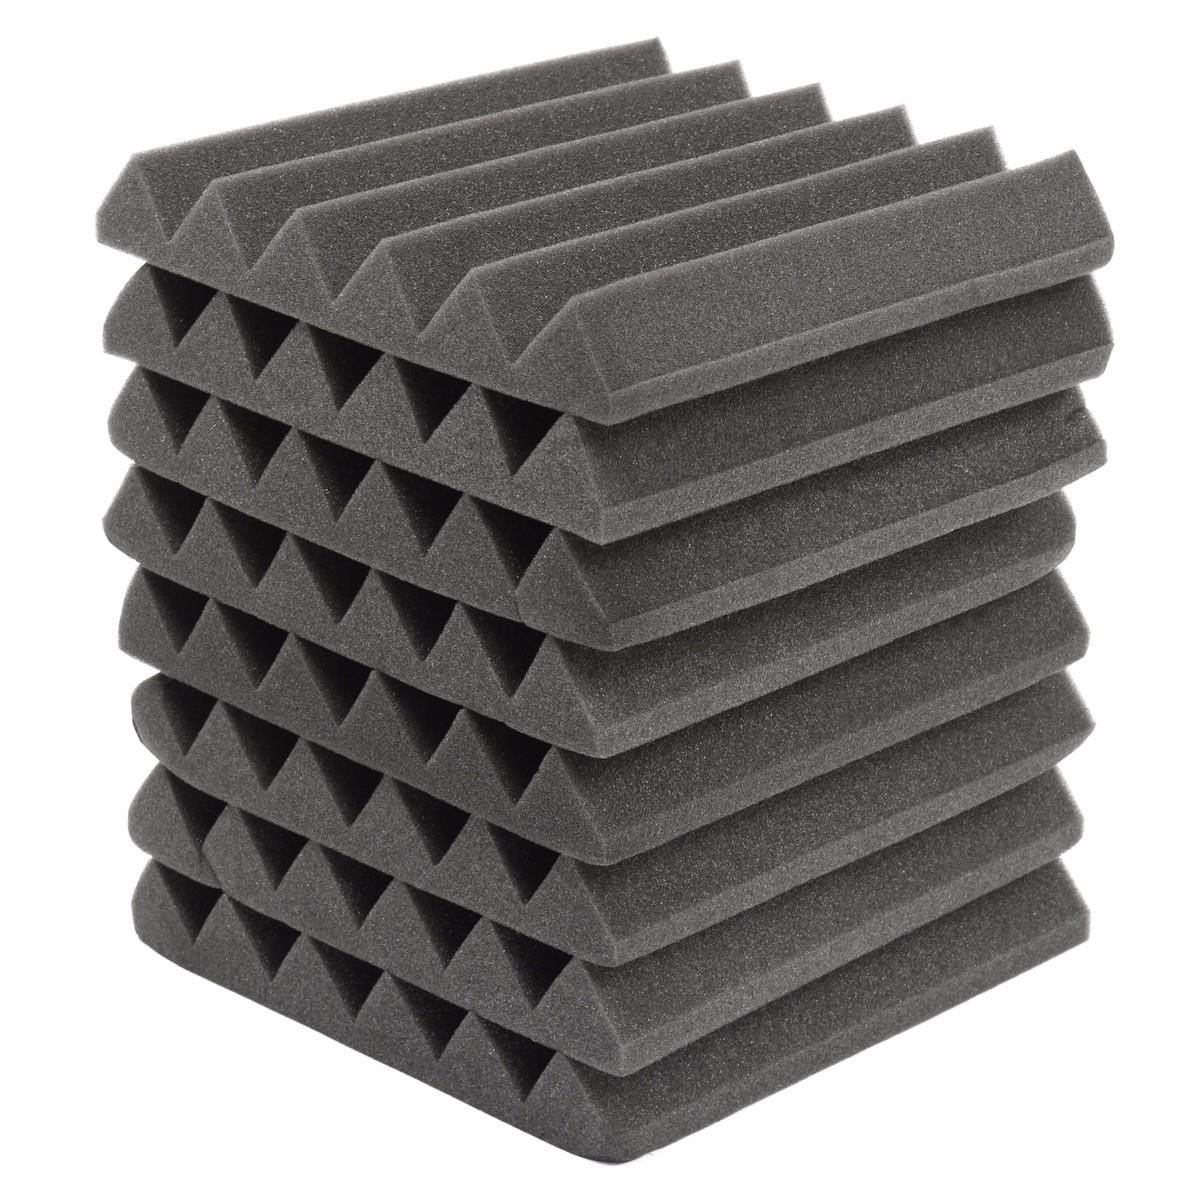 305-x-305-x-45mm Soundproofing Foam